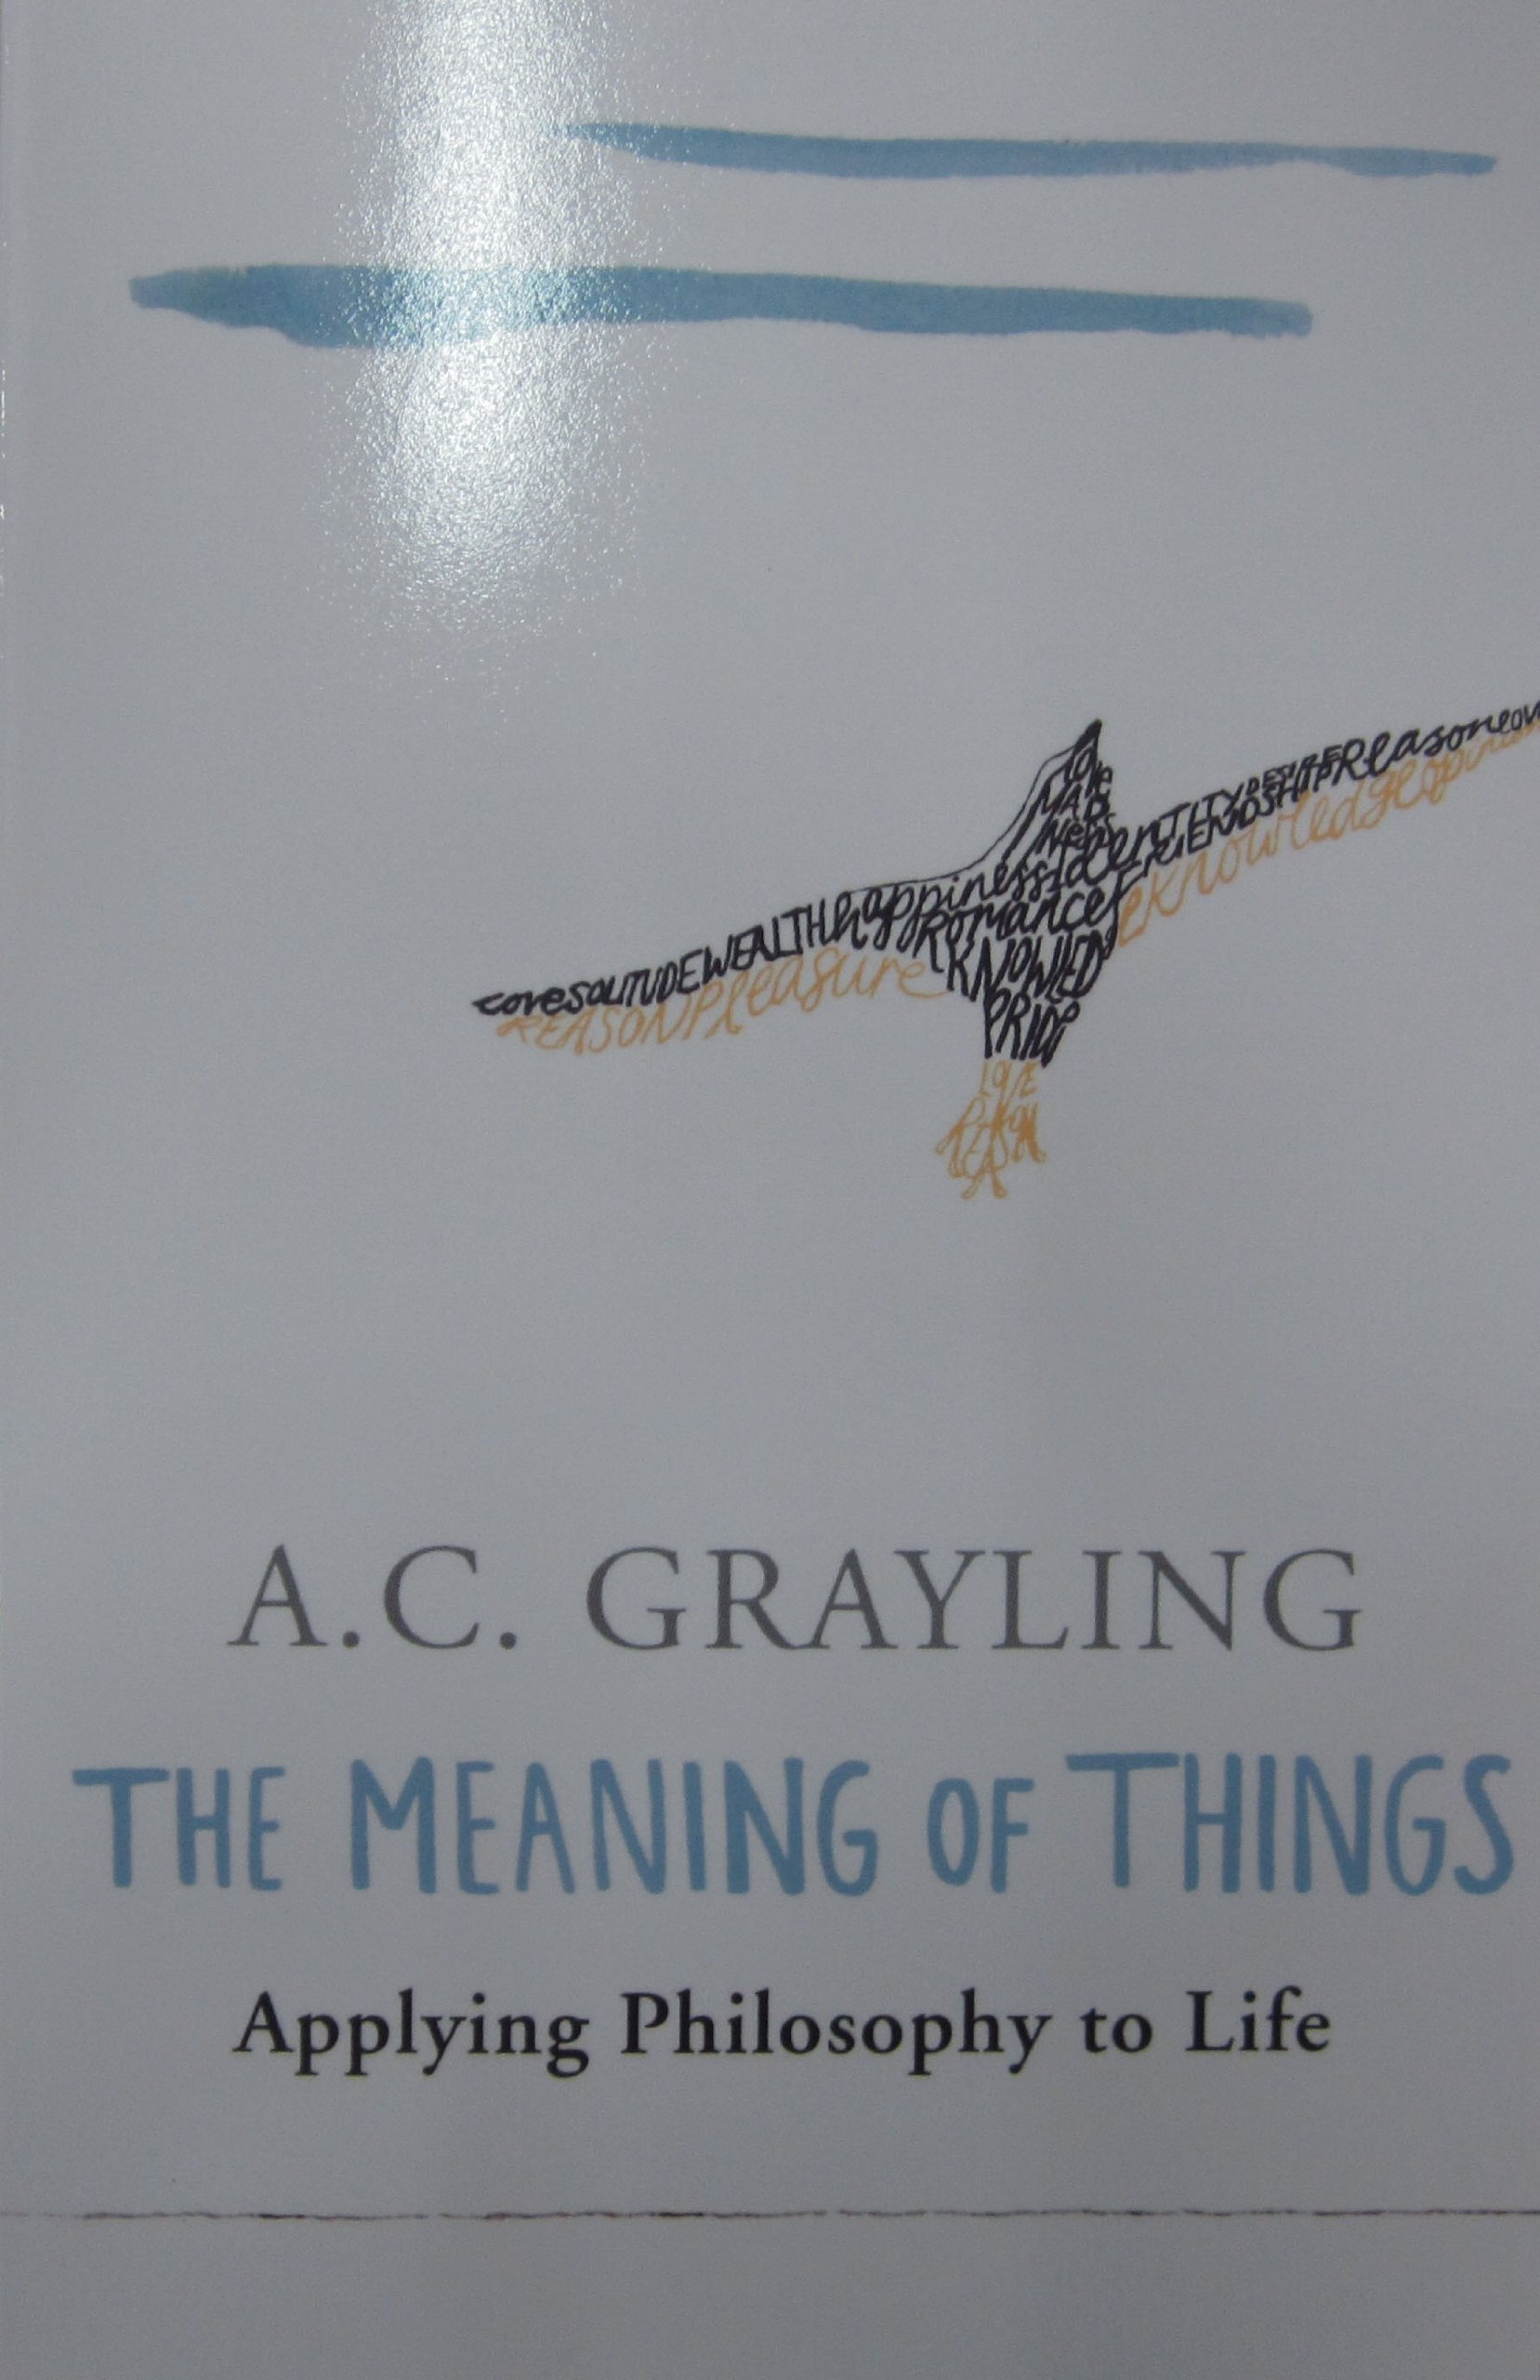 the meaning of things applying philosophy to life a c grayling the meaning of things applying philosophy to life a c grayling 9780753813591 com books